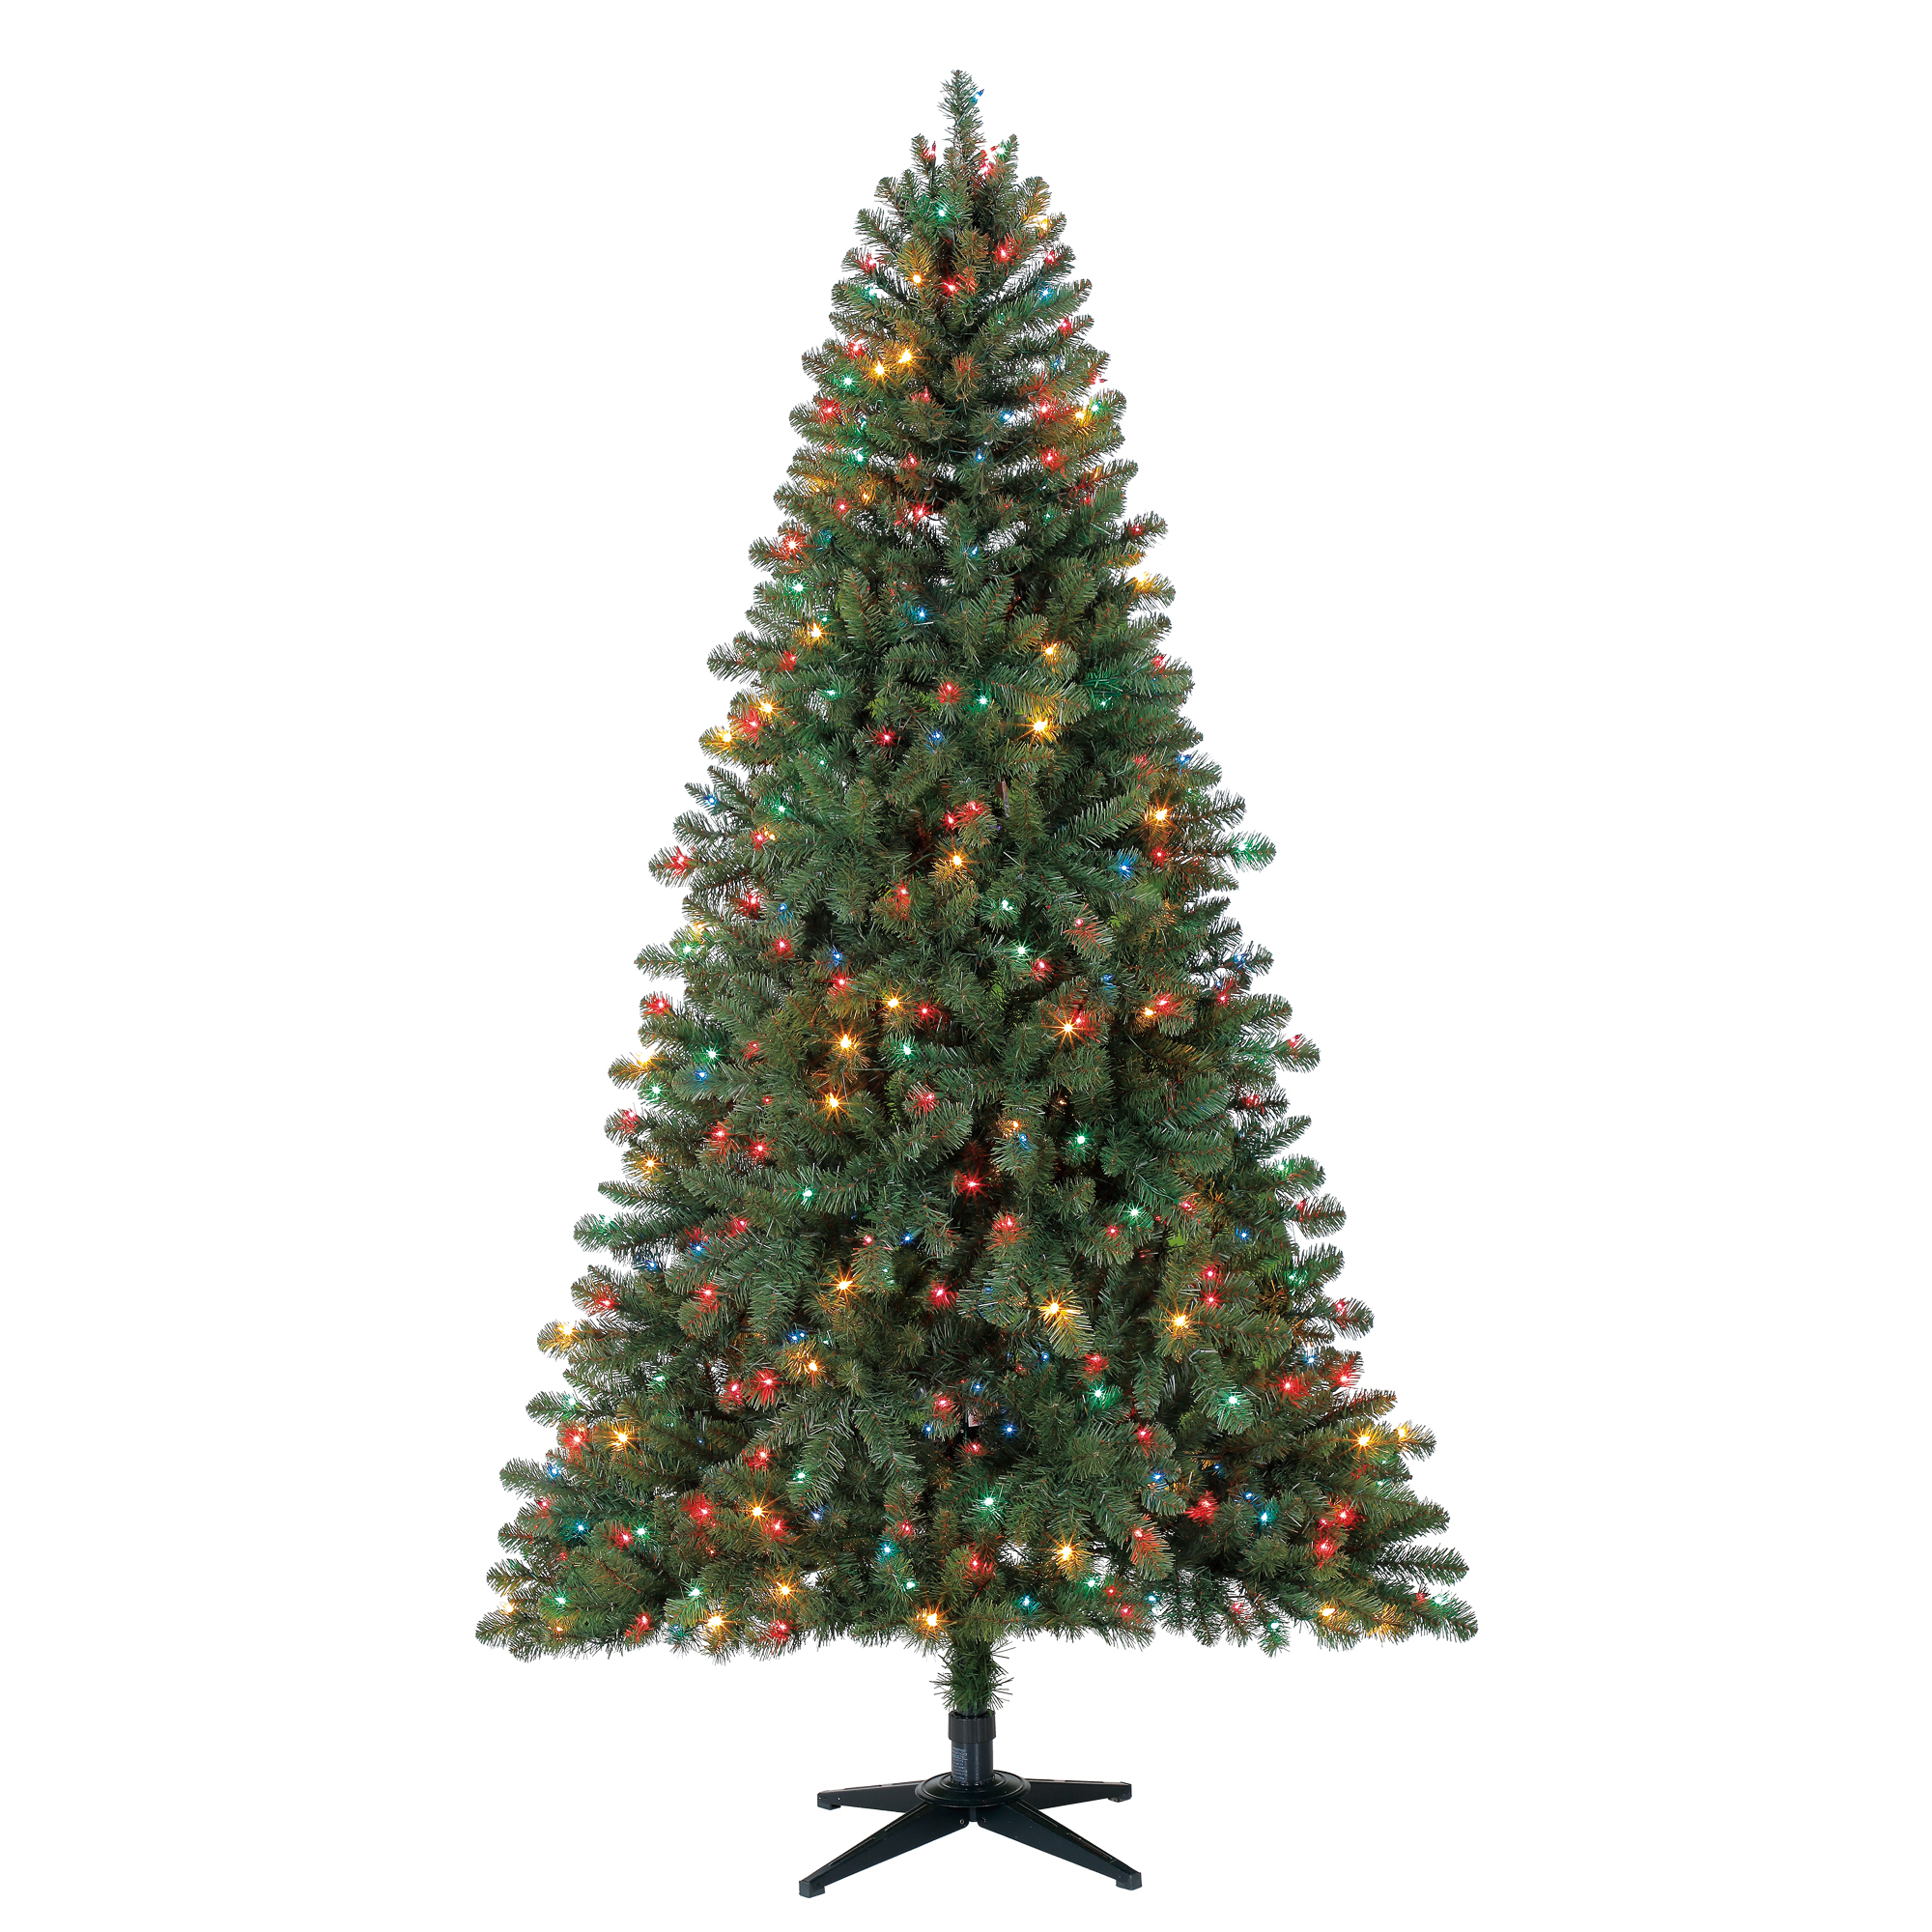 Holiday Time 7ft Pre-Lit Duncan Fir Artificial Christmas Tree with 450 Multicolored Lights